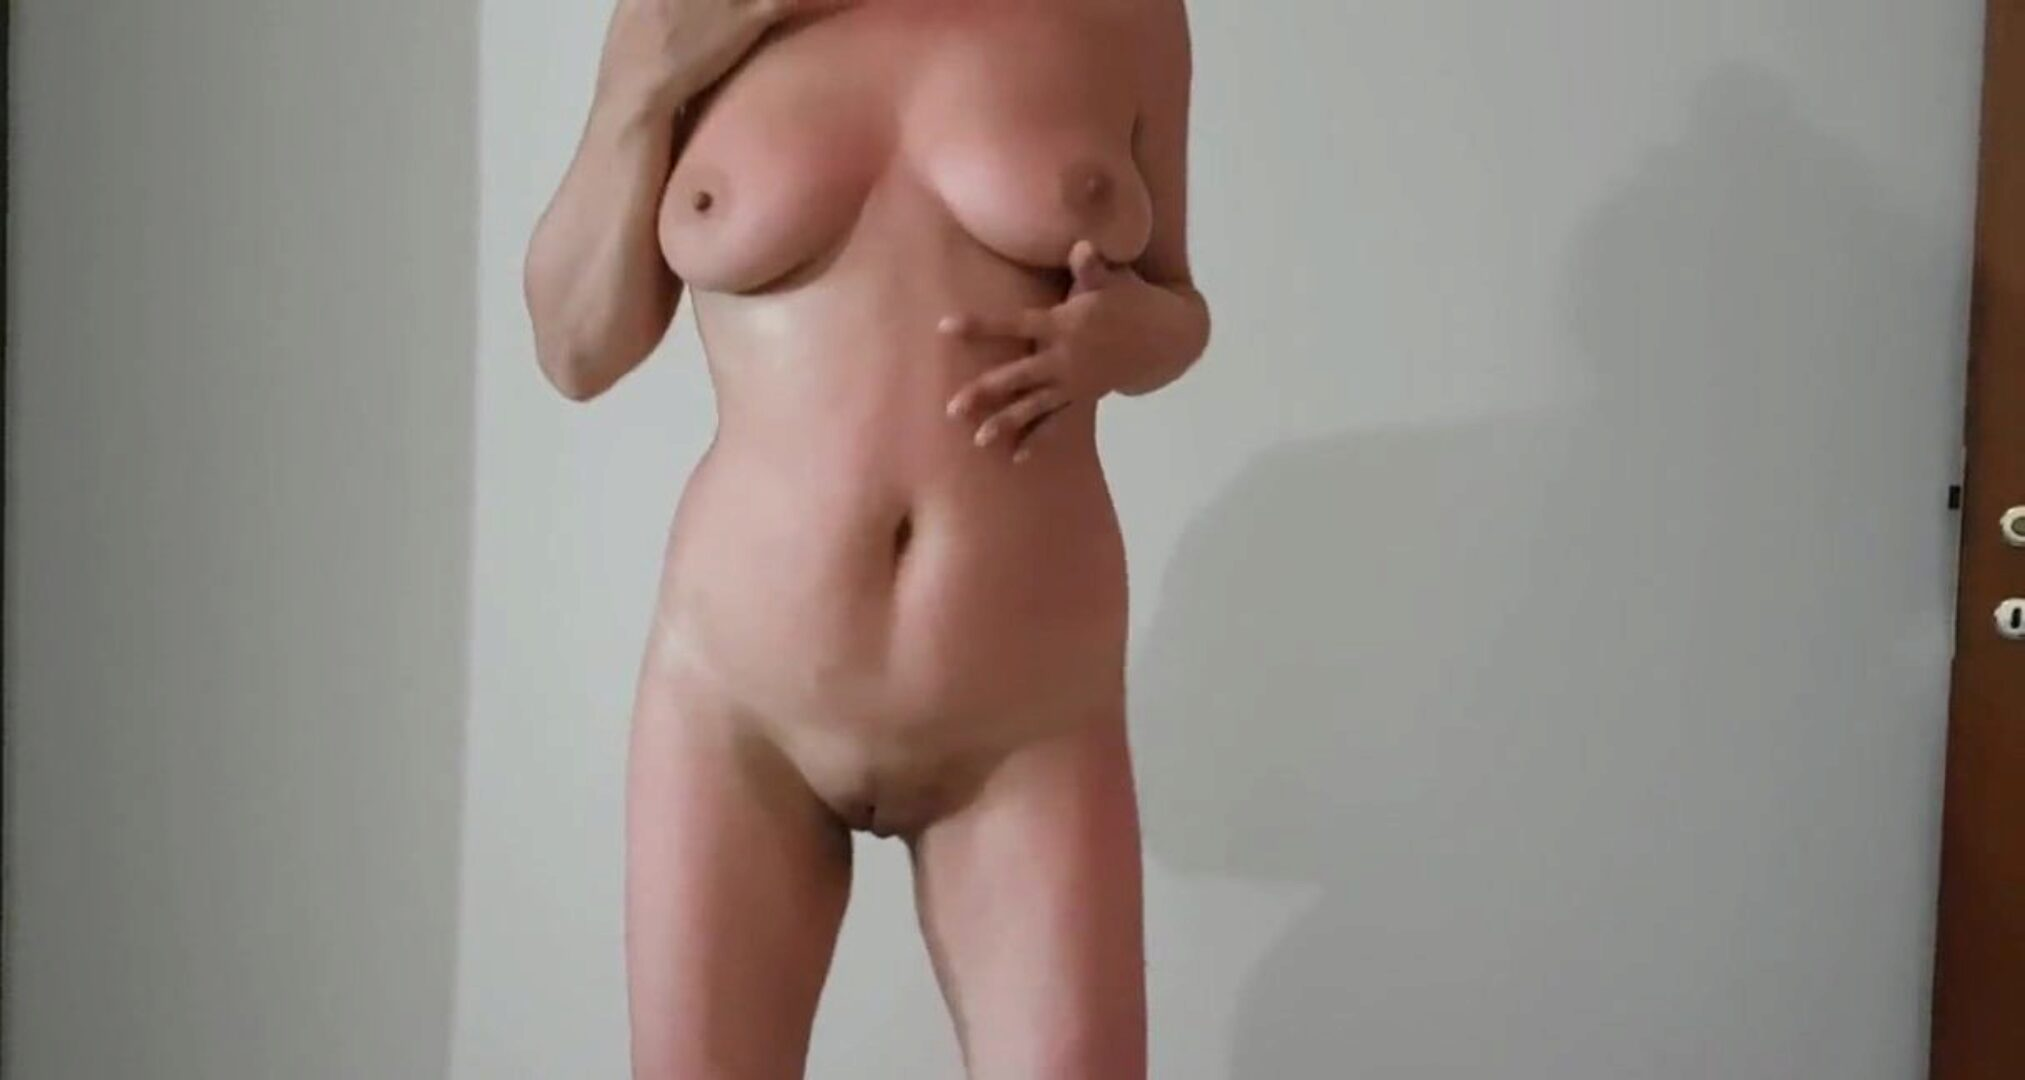 Sexy Dance: Mature & Free Sexy Xxx Porn Video 7b - xHamster Watch Sexy Dance tube fuck-a-thon movie for free-for-all on xHamster, with the amazing bevy of Italian Mature & Free Sexy Xxx HD pornography video scenes